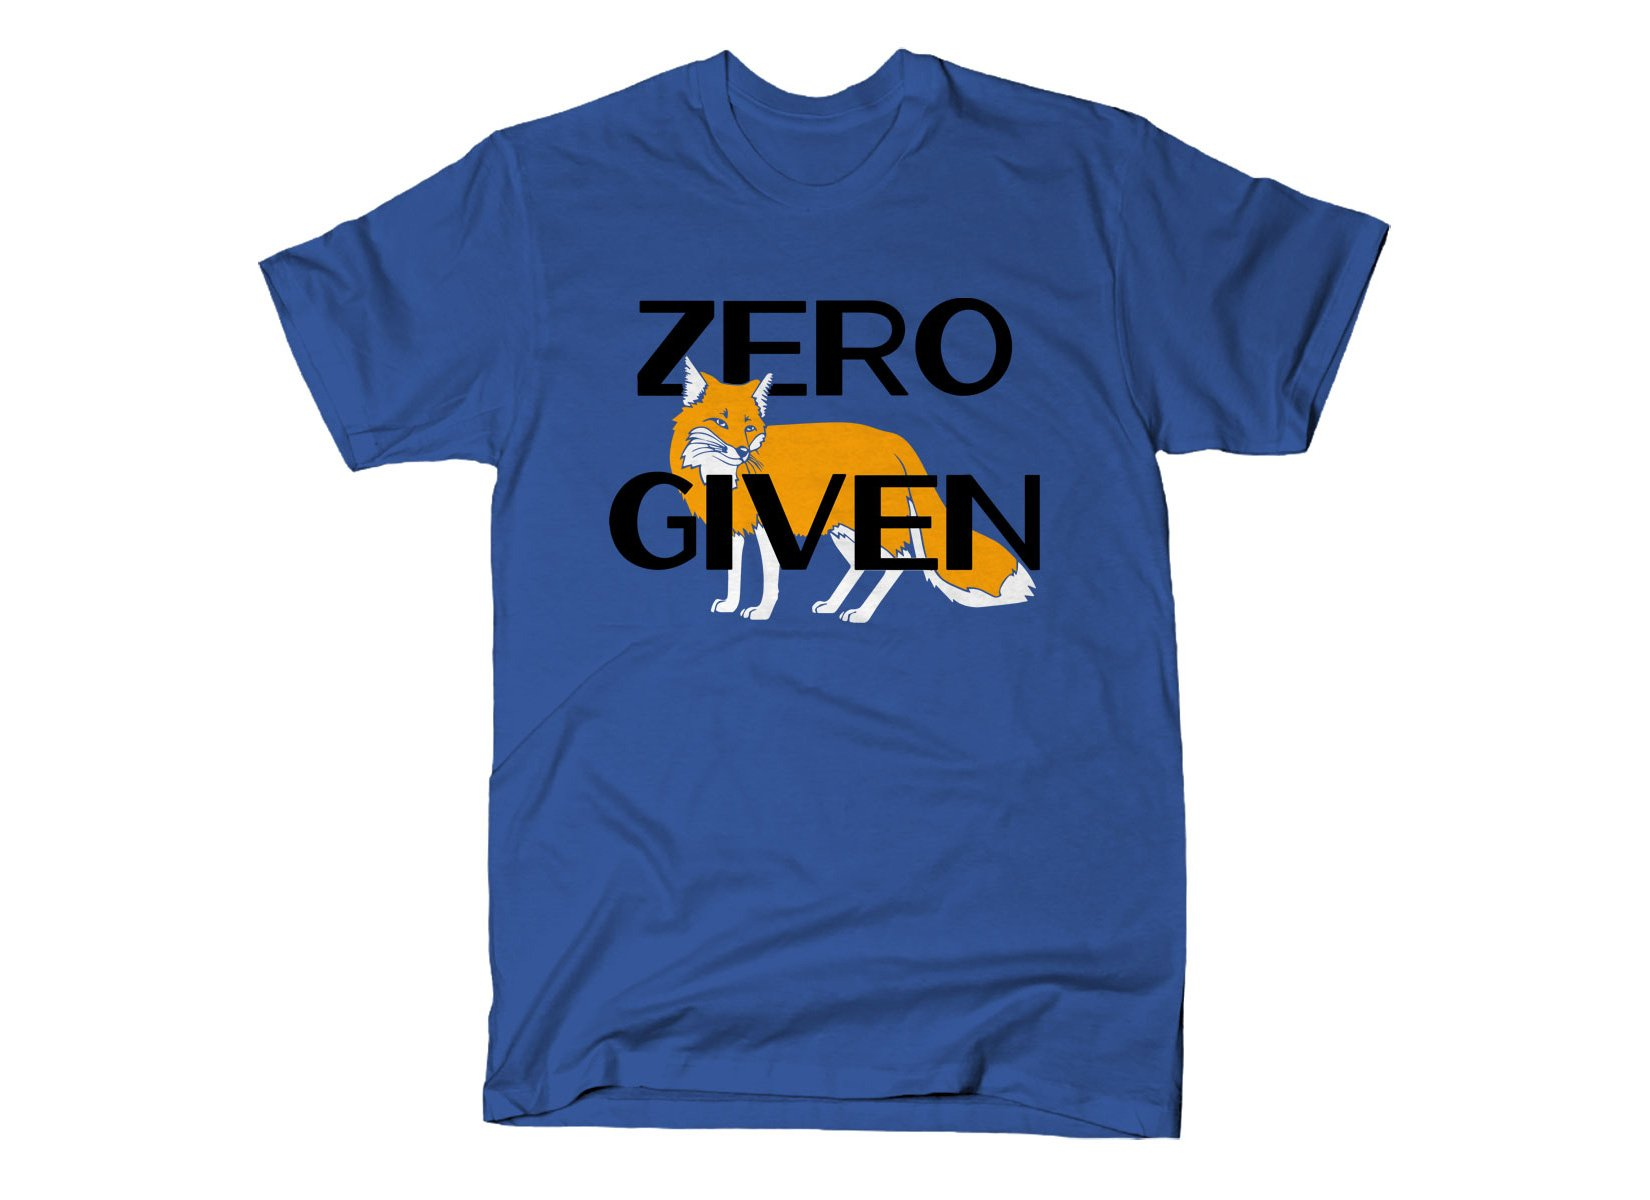 Zero Fox Given on Mens T-Shirt